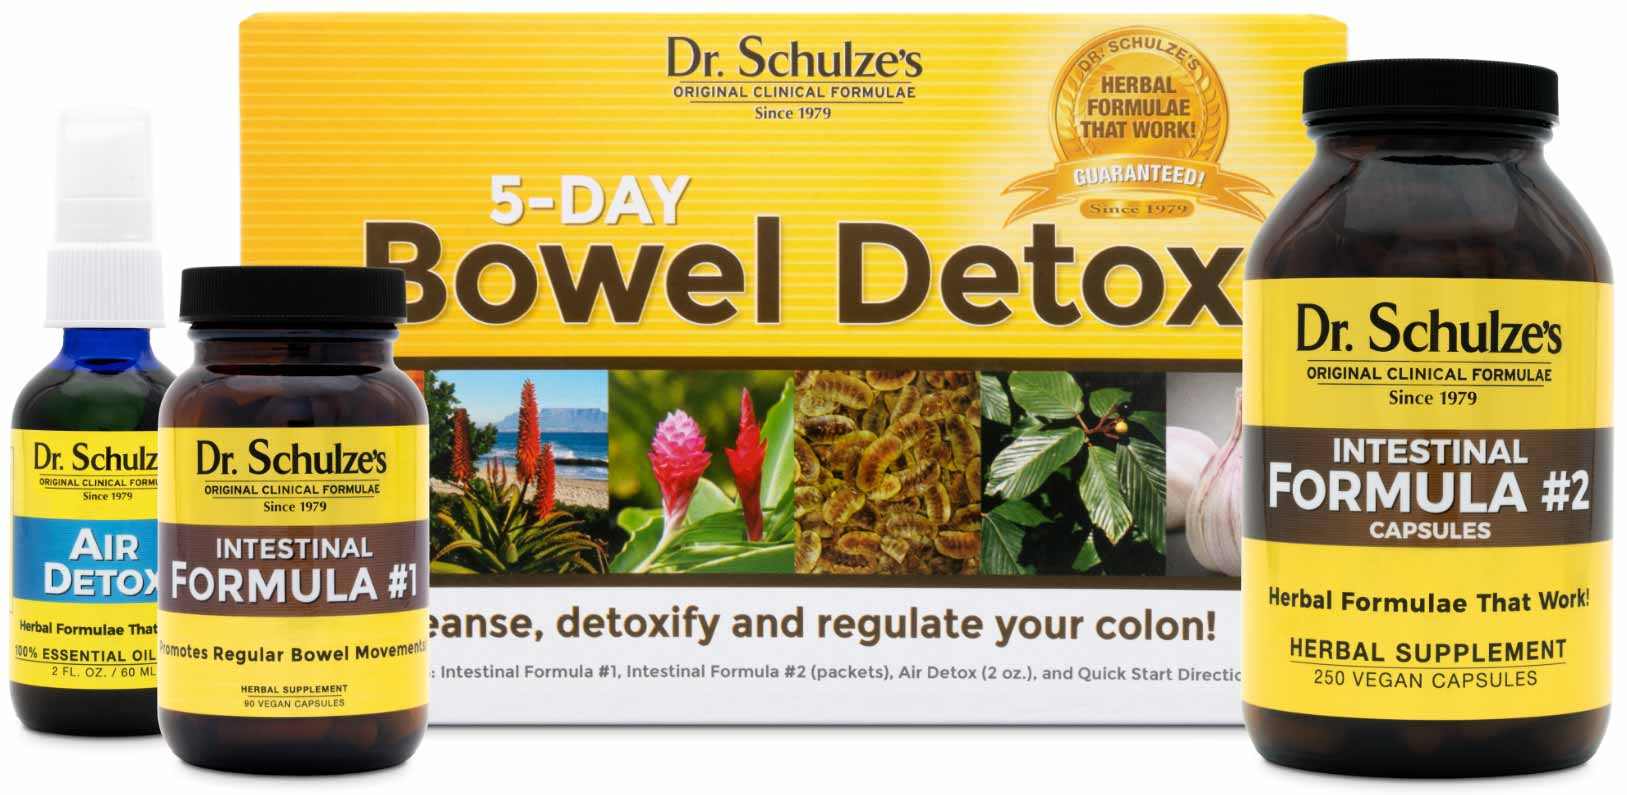 5-Day Bowel Detox, Capsules, Best Colon Cleanse